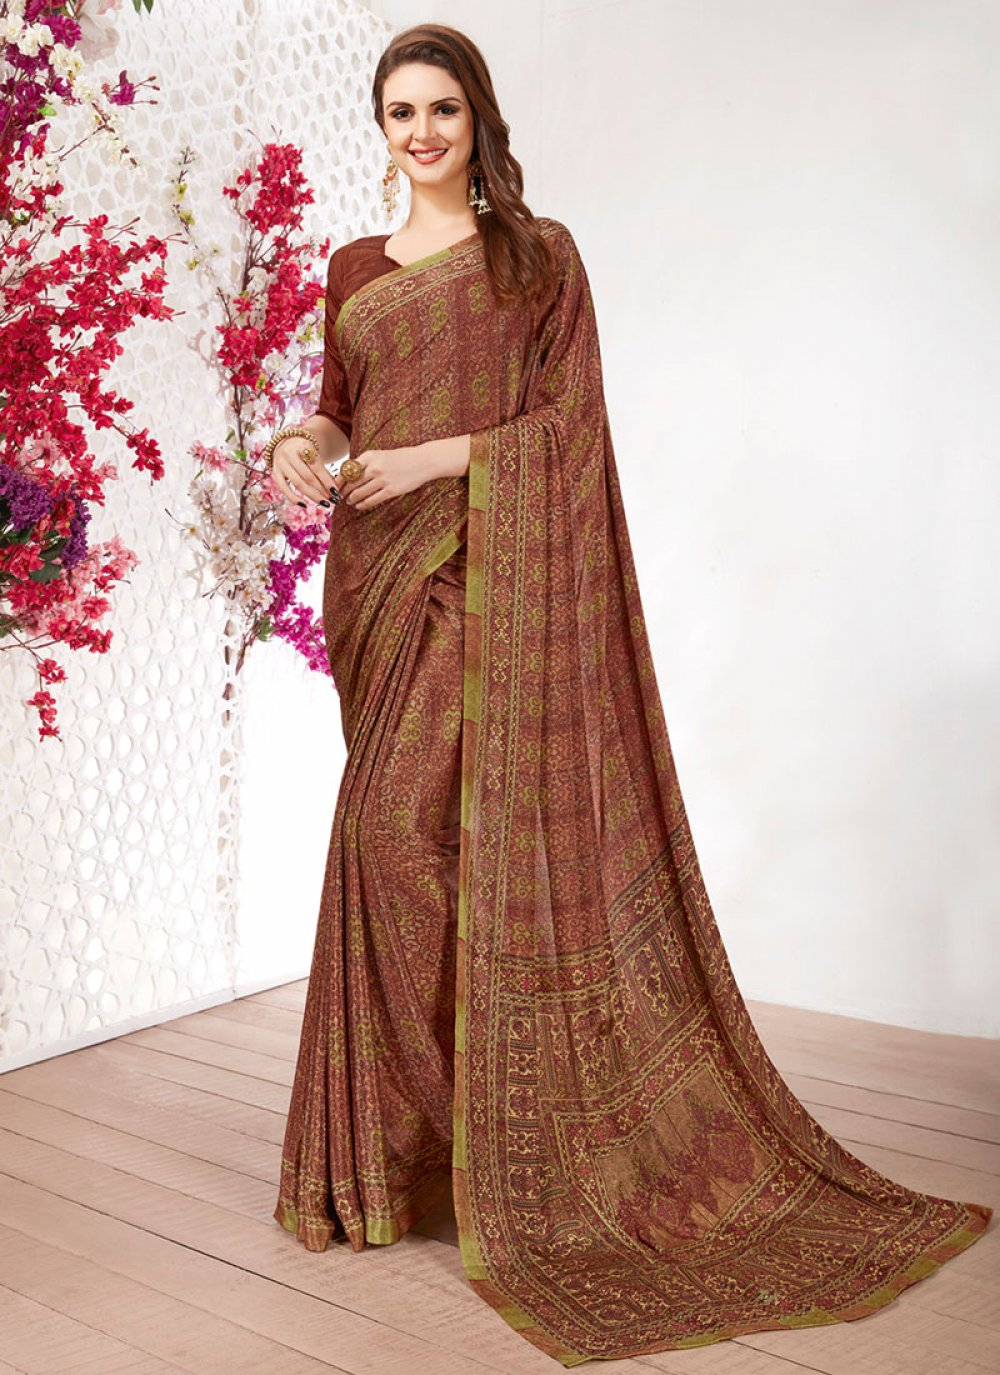 Faux Crepe Printed Saree in Multi Colour